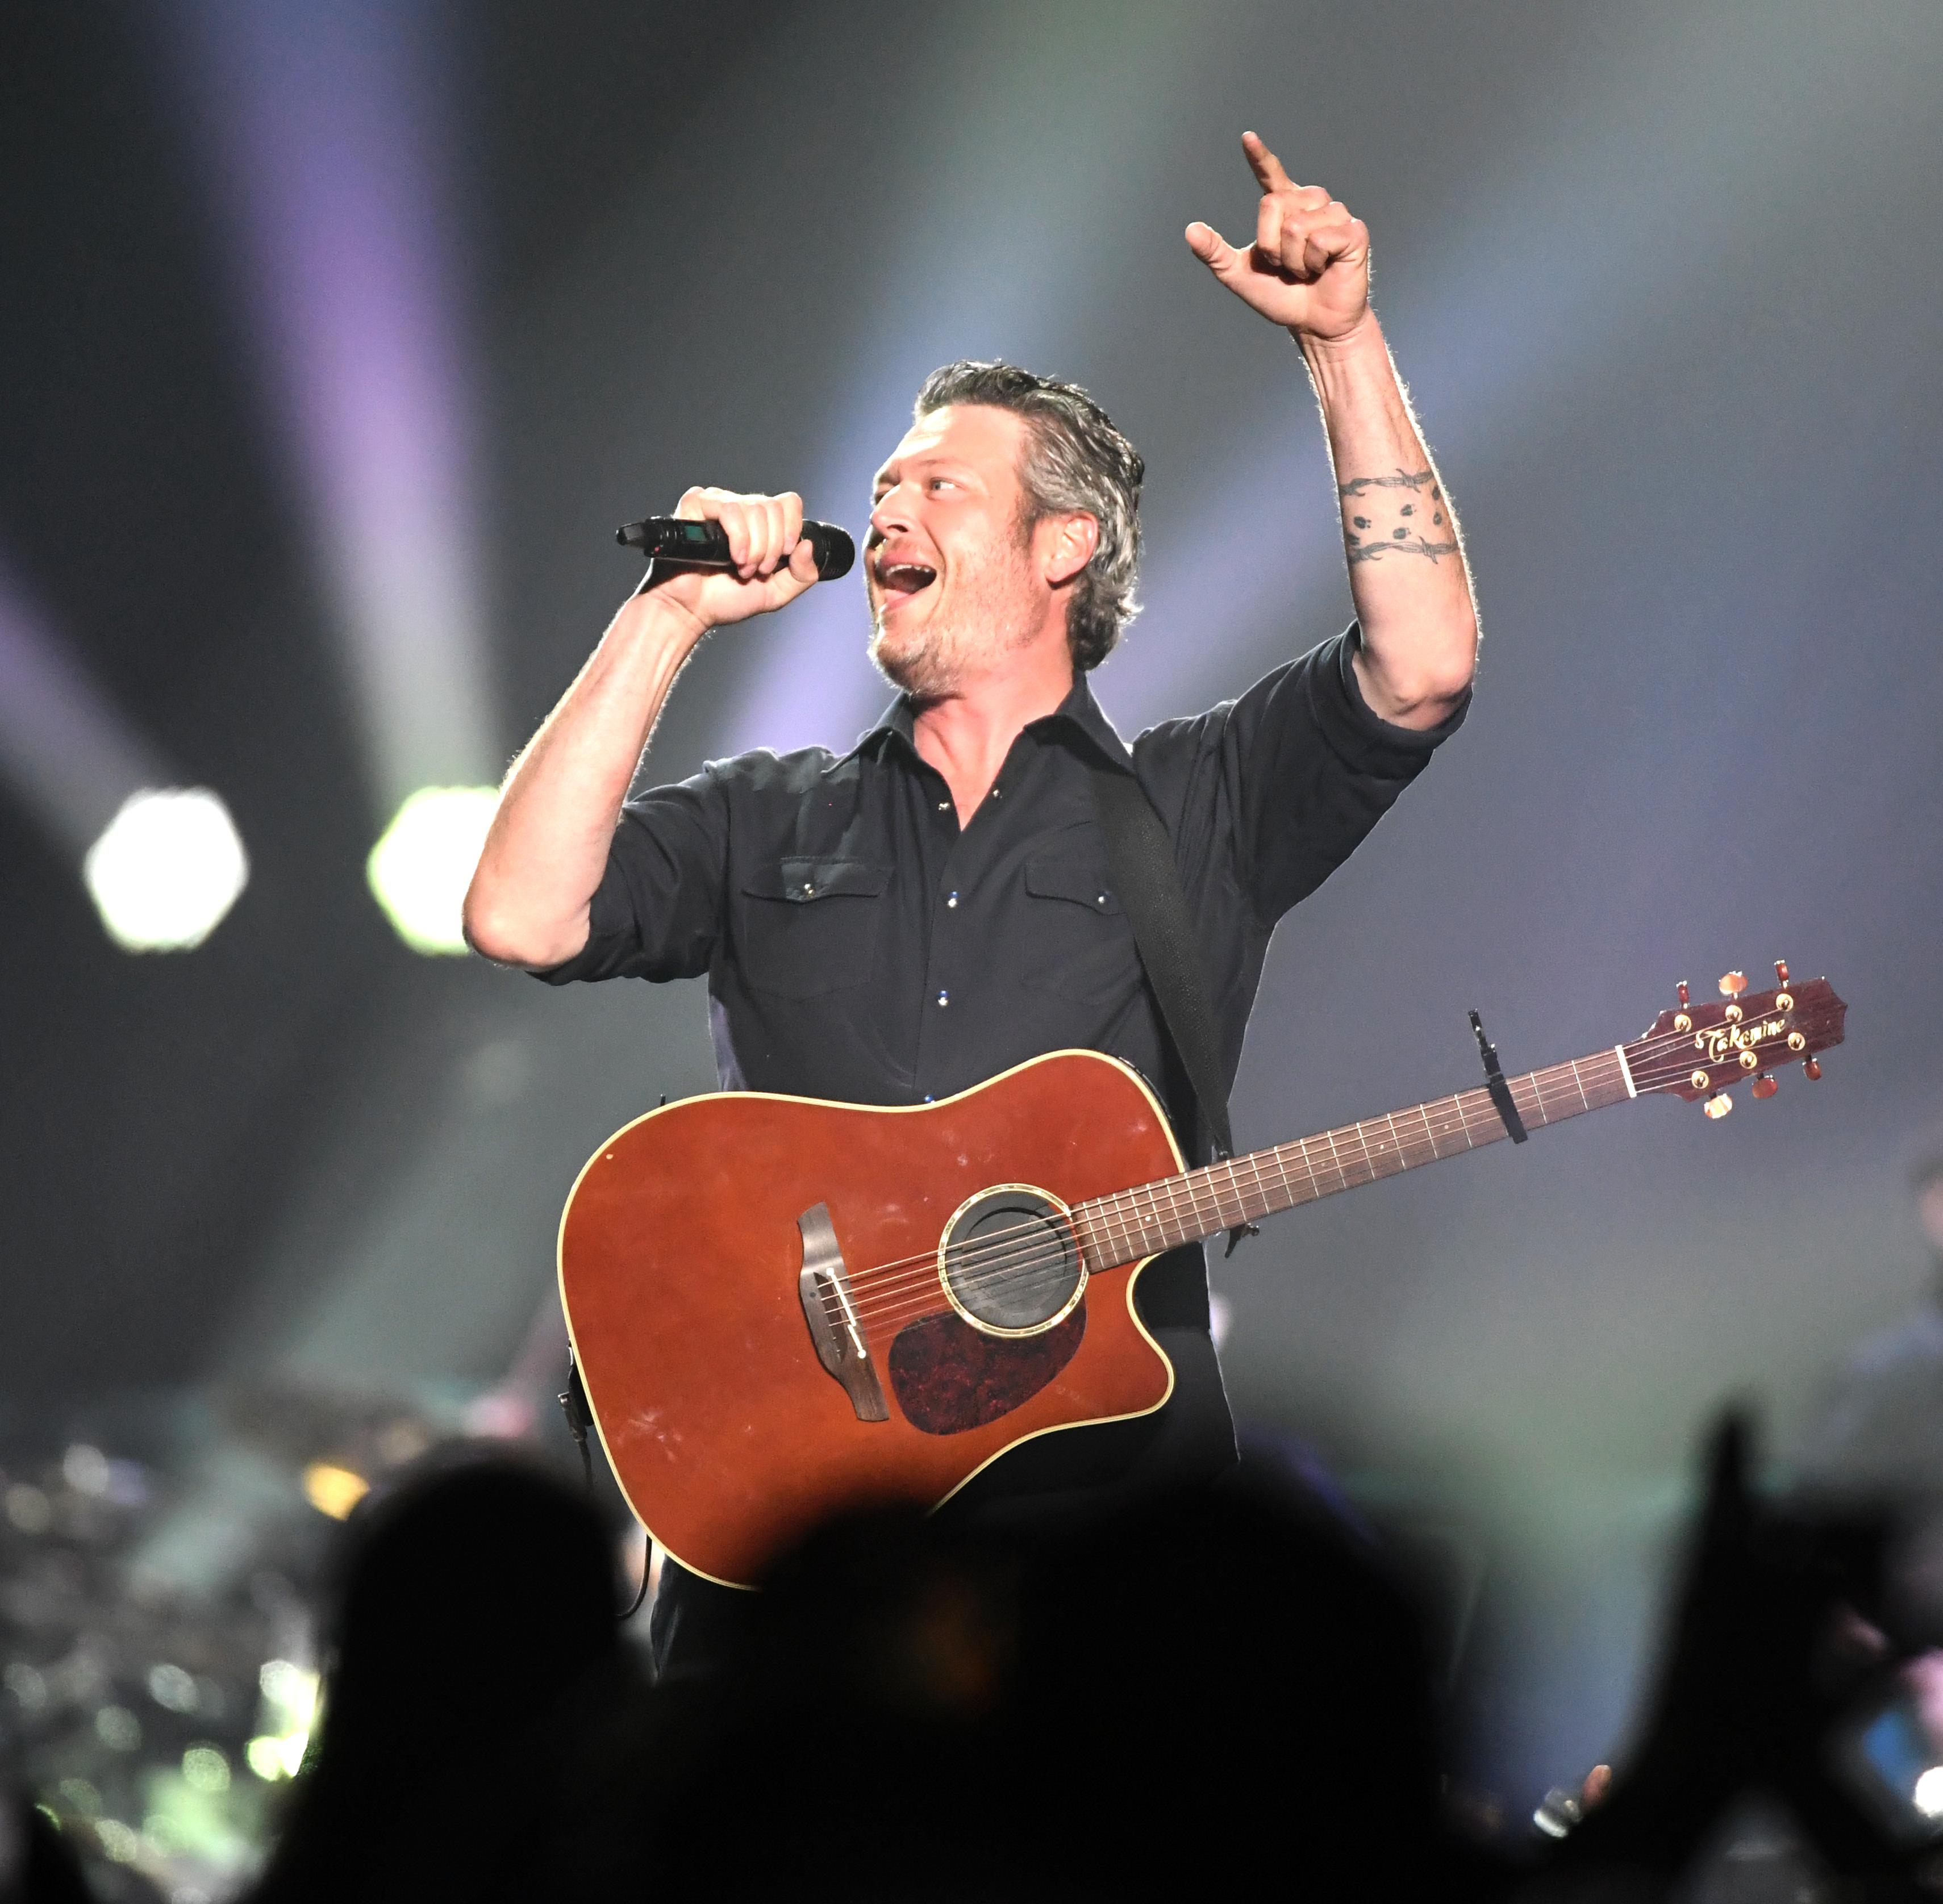 Concert Review Blake Sheltons Voice Shines Brightest At Arena Show